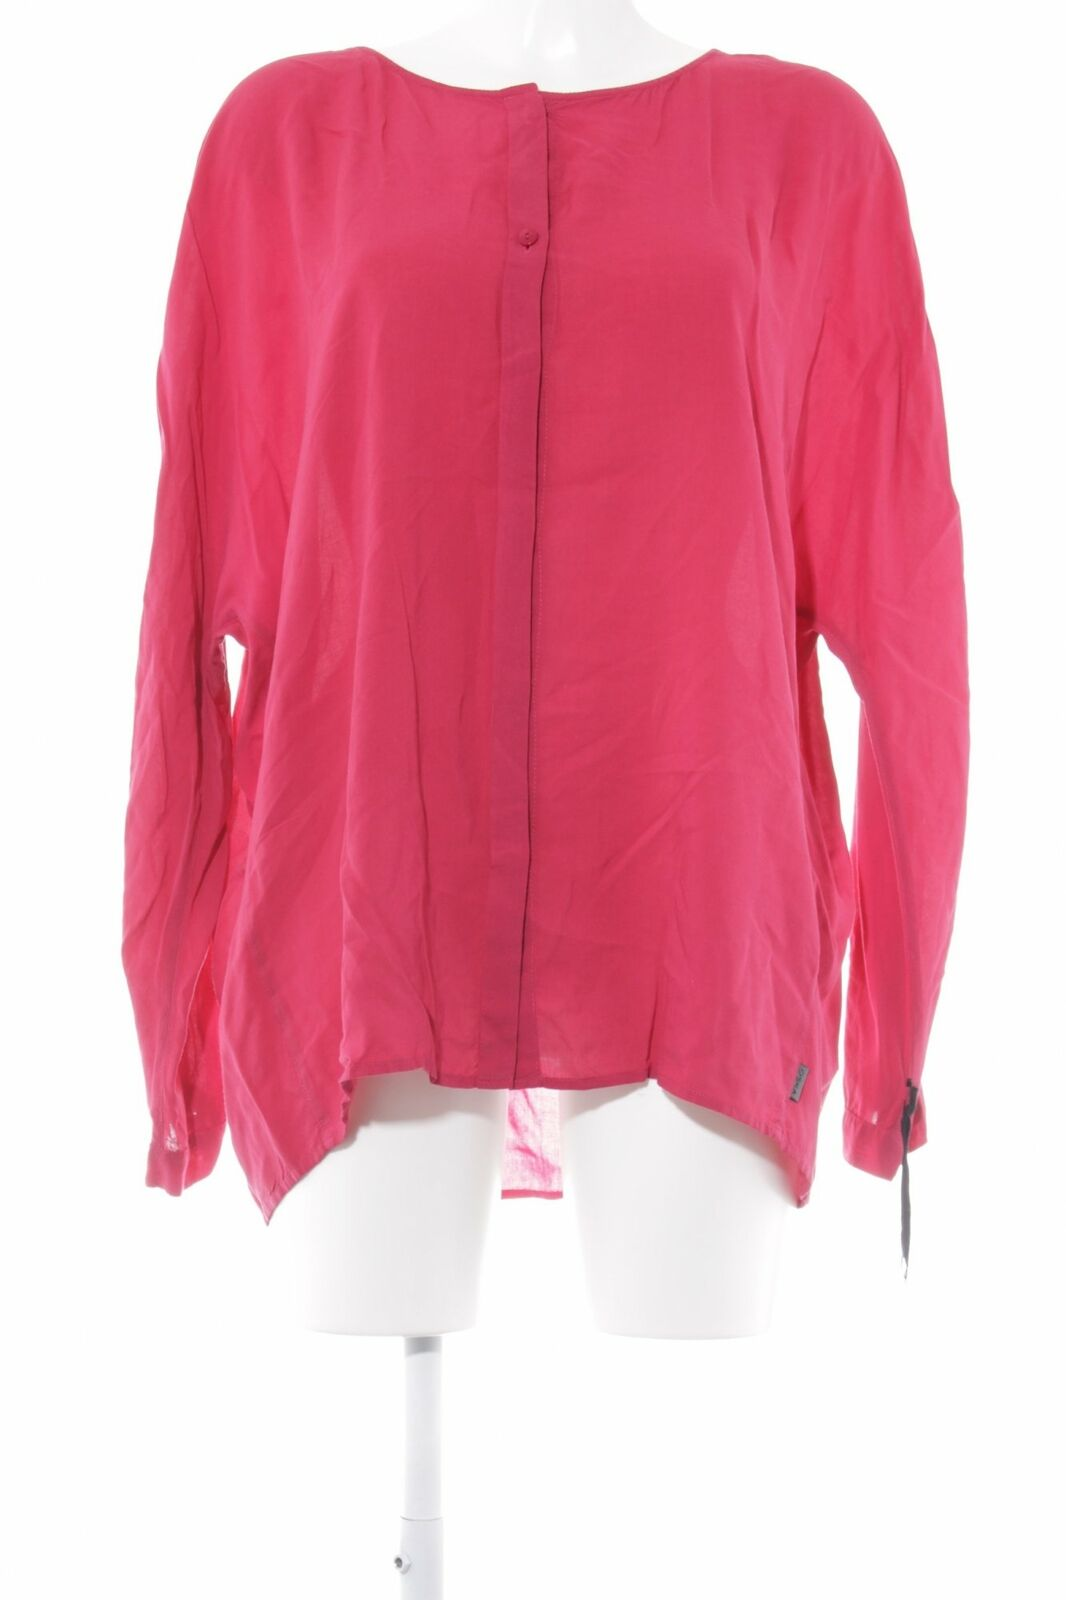 OSKA Langarm-Blause magenta Casual-Look Damen Gr. DE 42 Blouse Long Sleeve Blouse